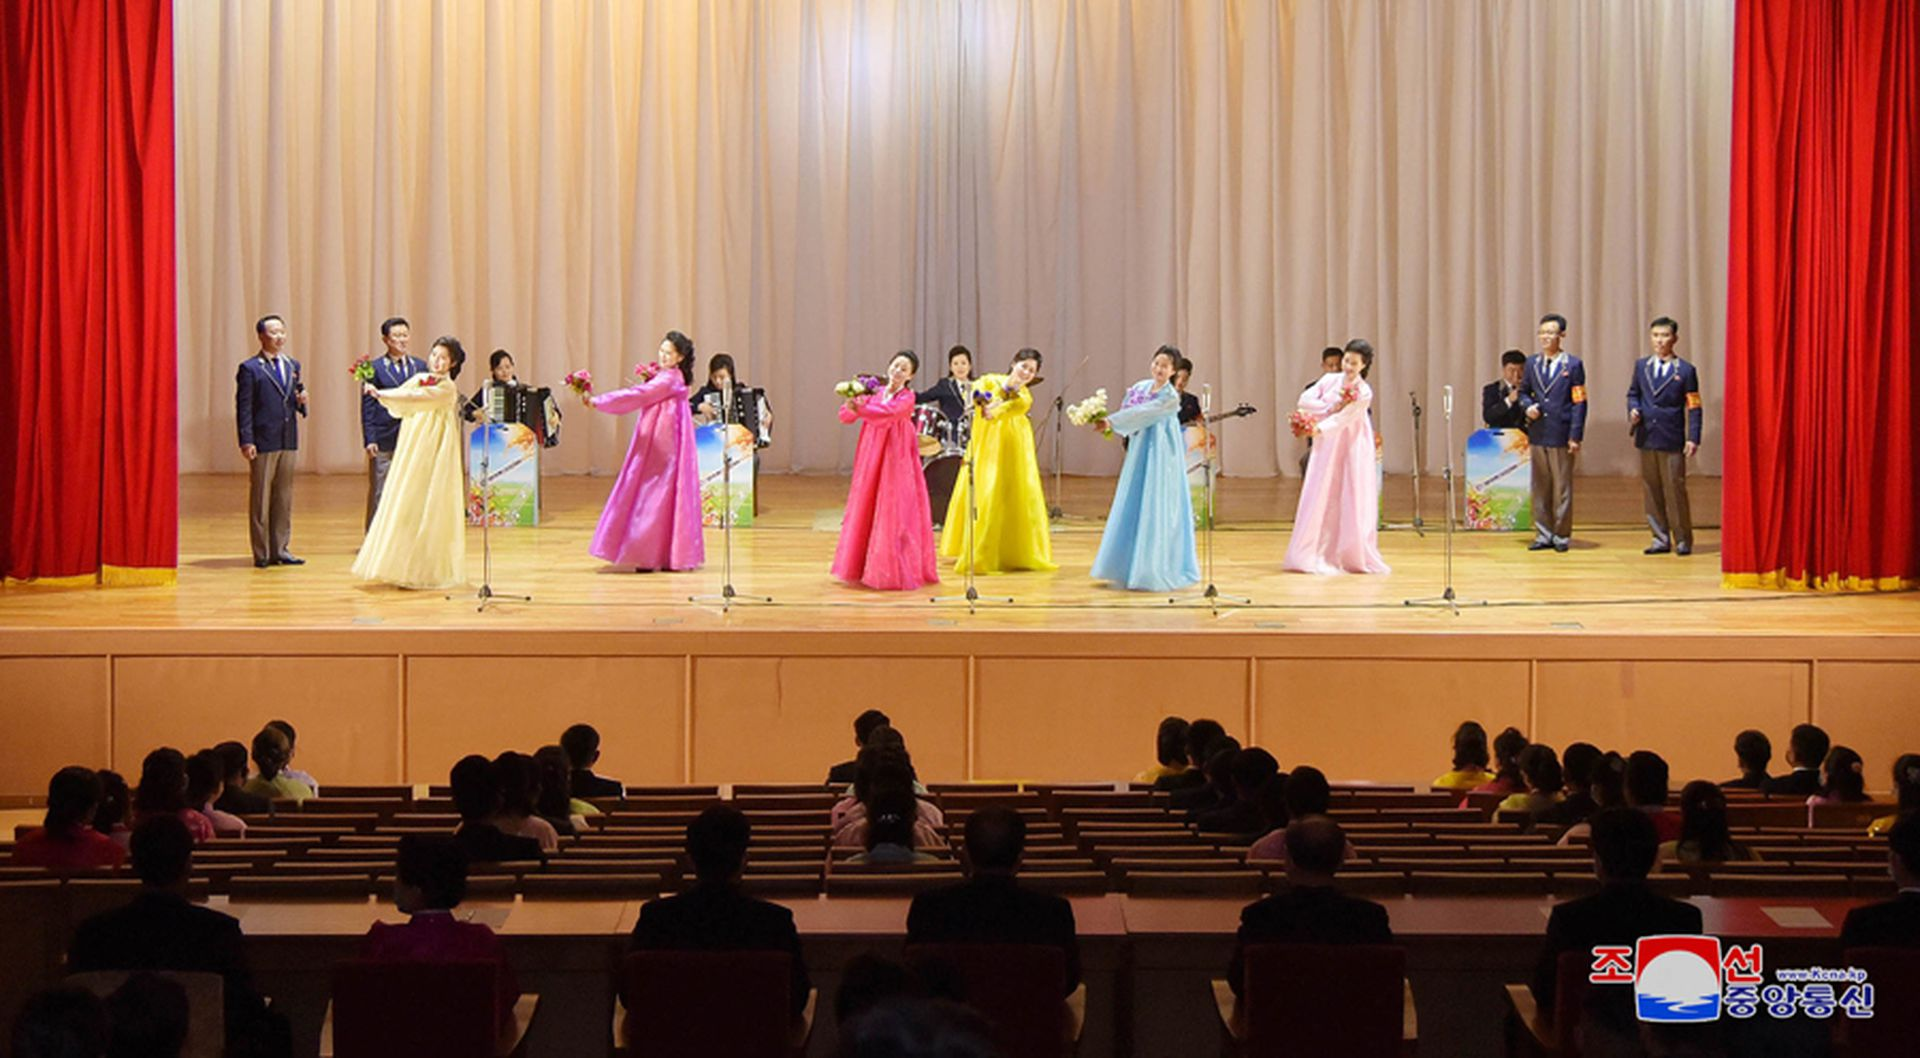 On February 2021, 2, the North Korean Youth Central Art Propaganda Team performed a song and dance performance at the Pyongyang Youth Central Hall. (Korean Central News Agency)